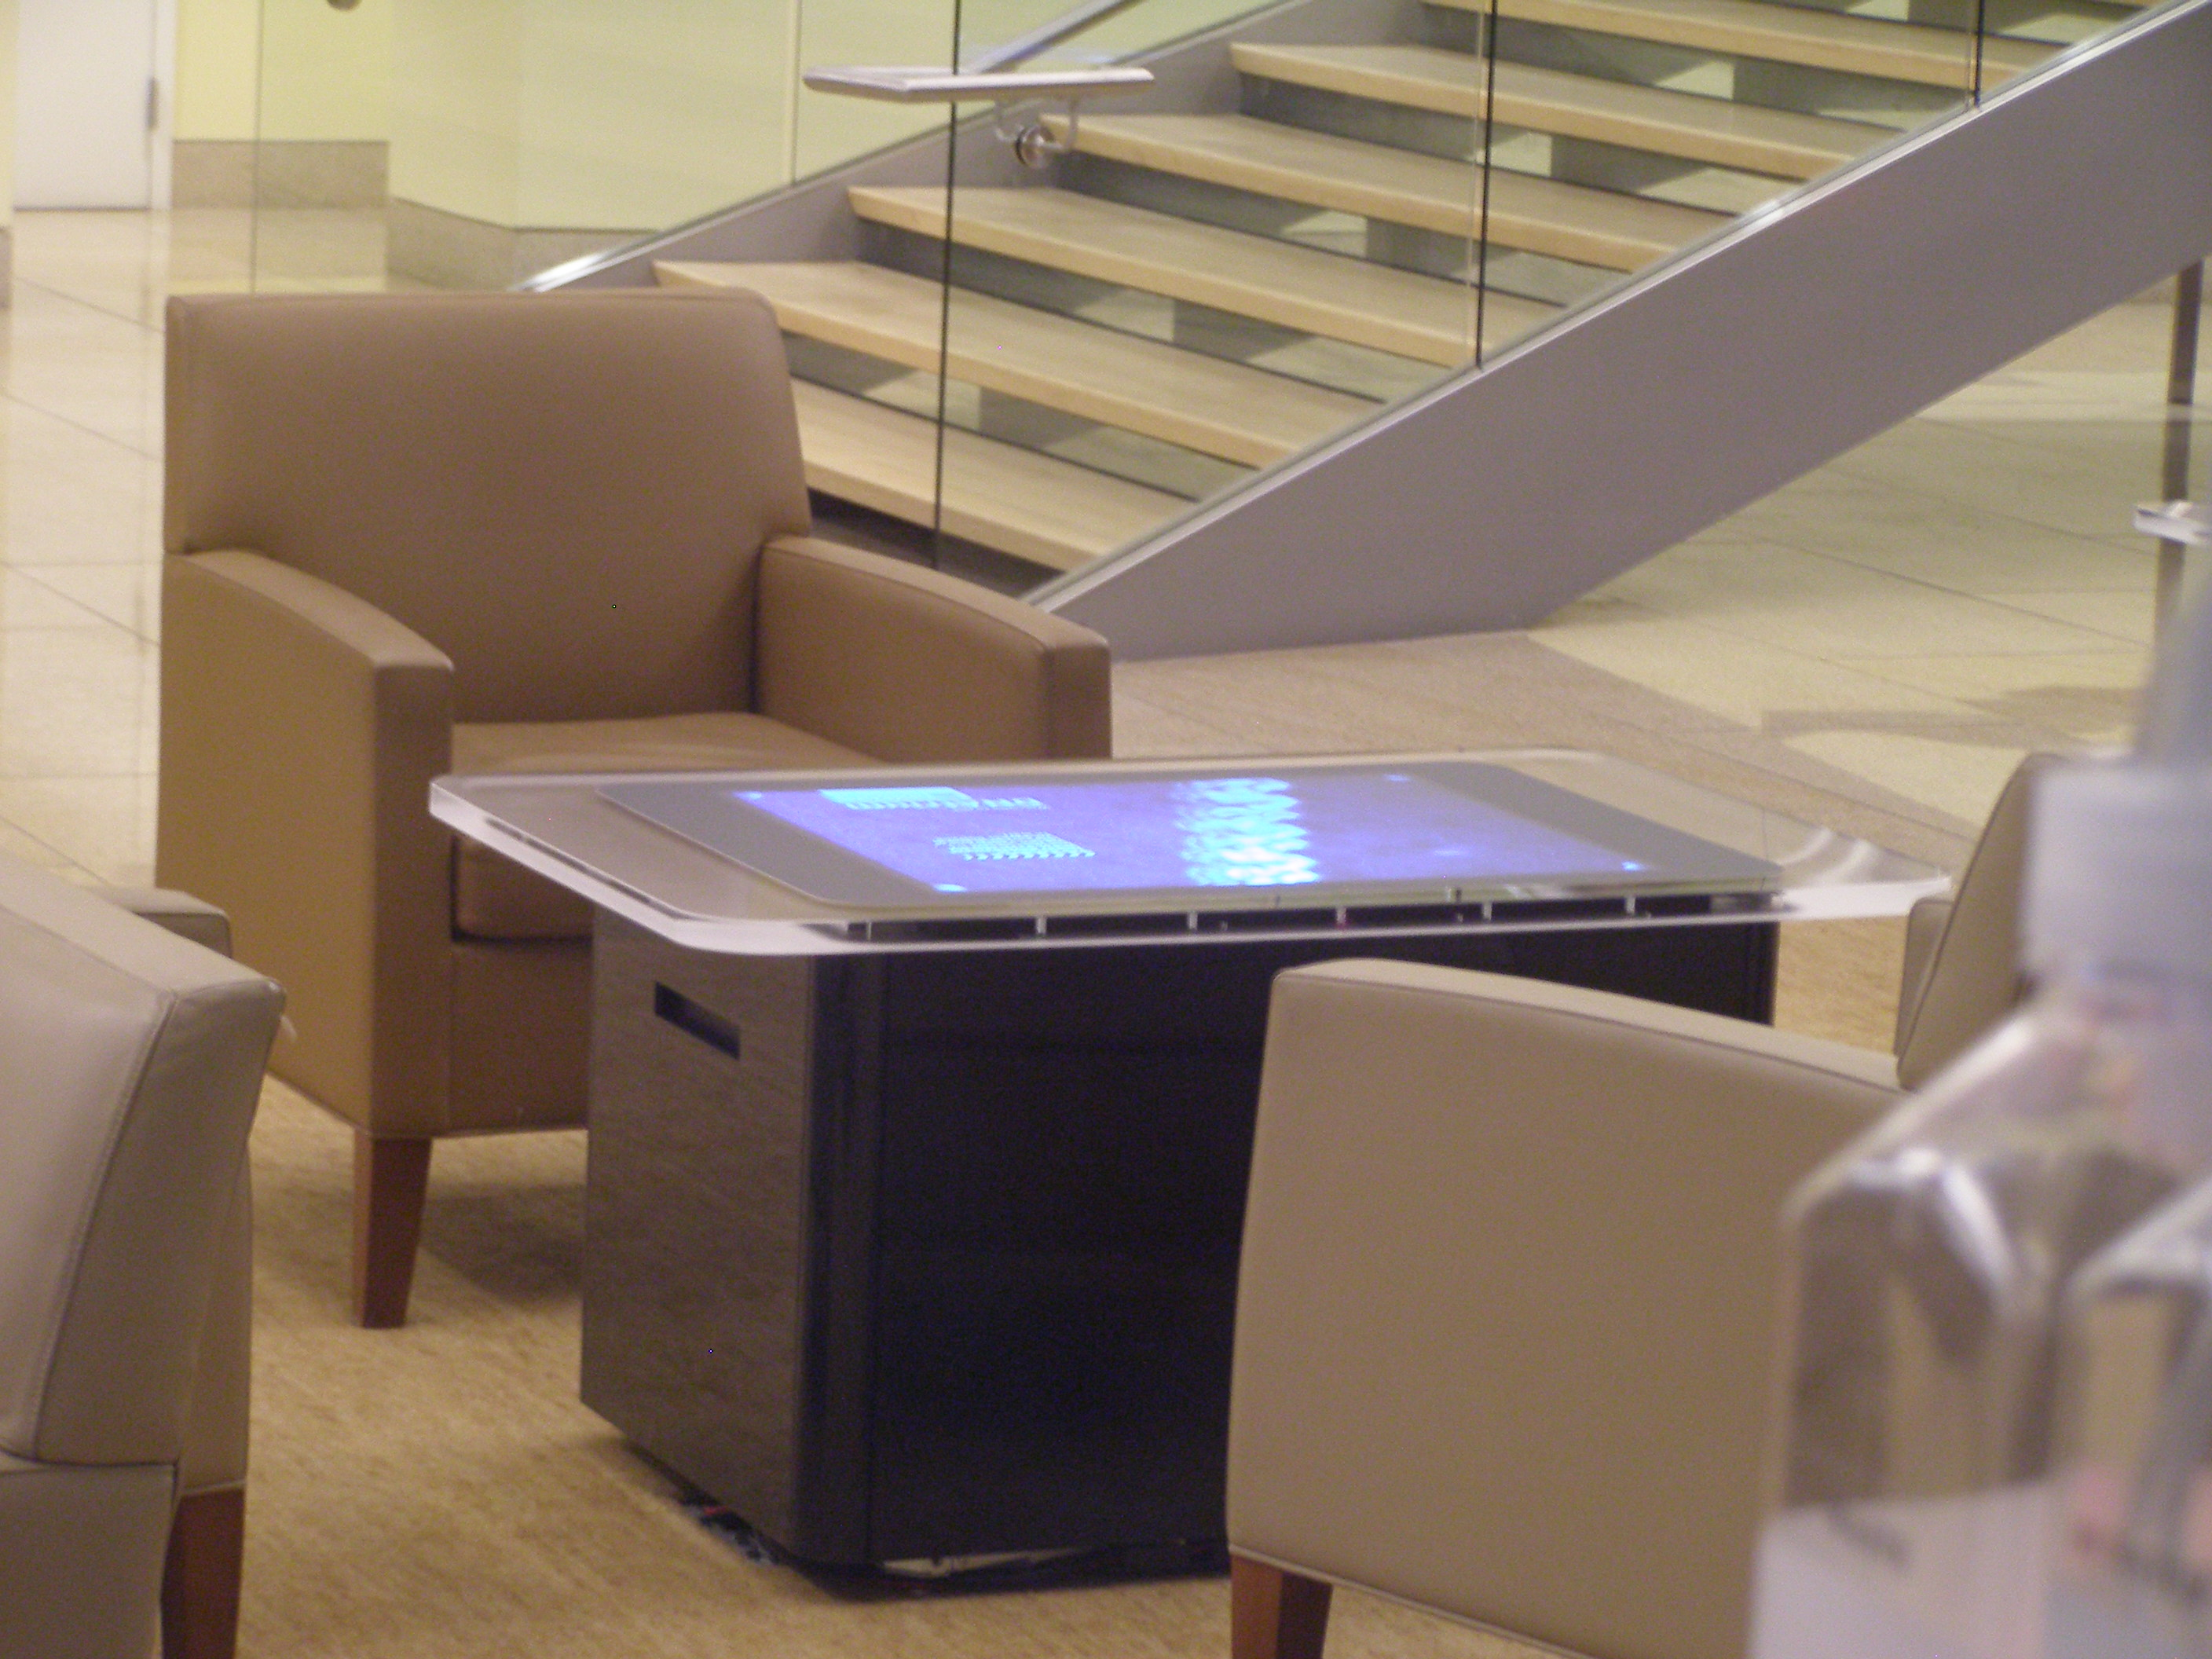 Even the tables in the lobby have monitors in them!